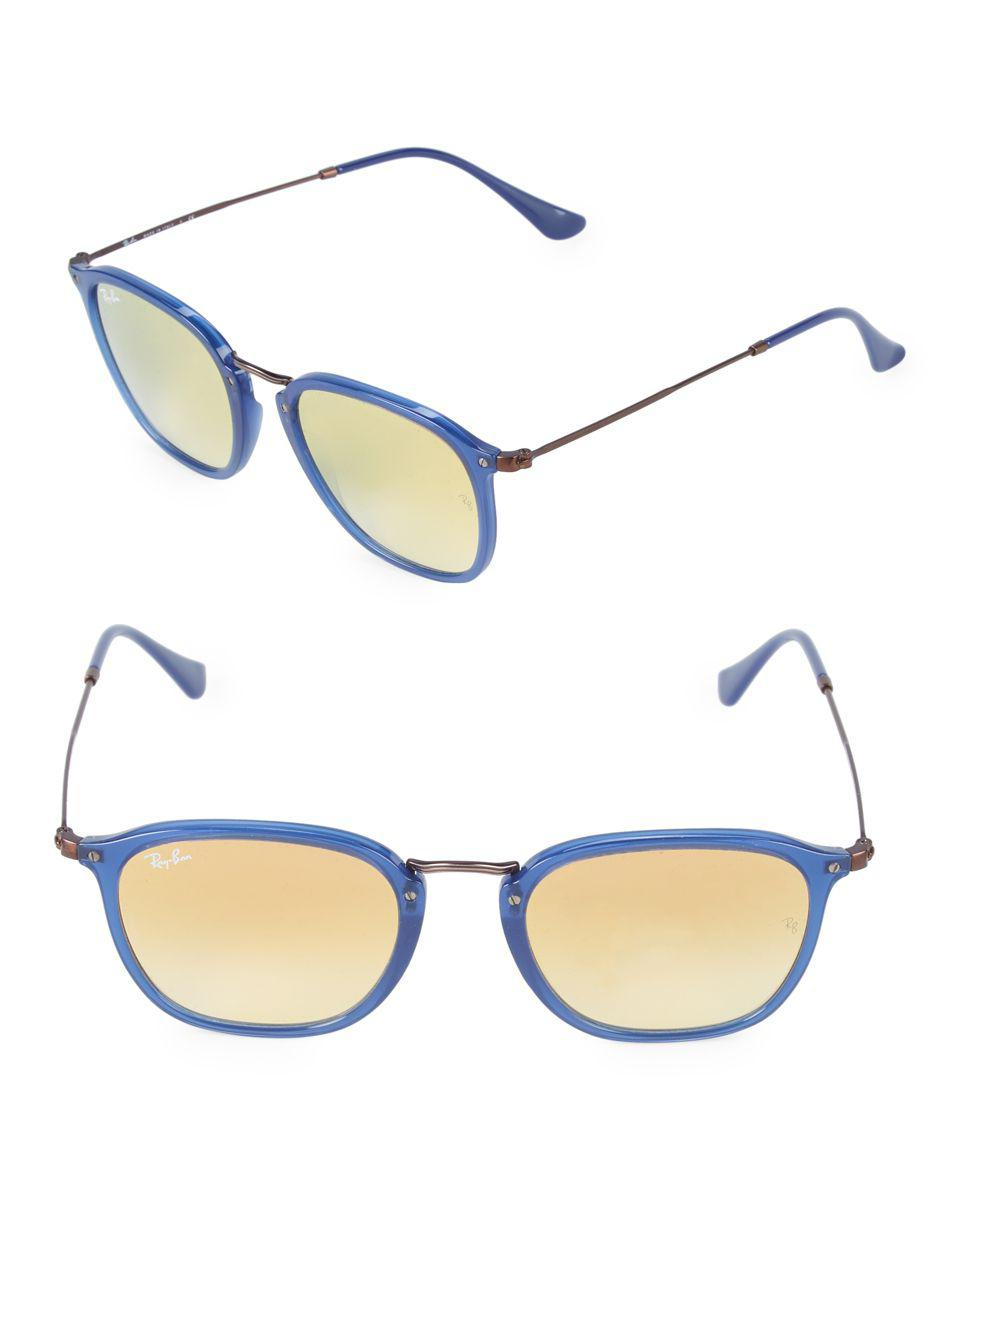 987fc8248d Ray-Ban 51mm Square Sunglasses in Blue - Lyst